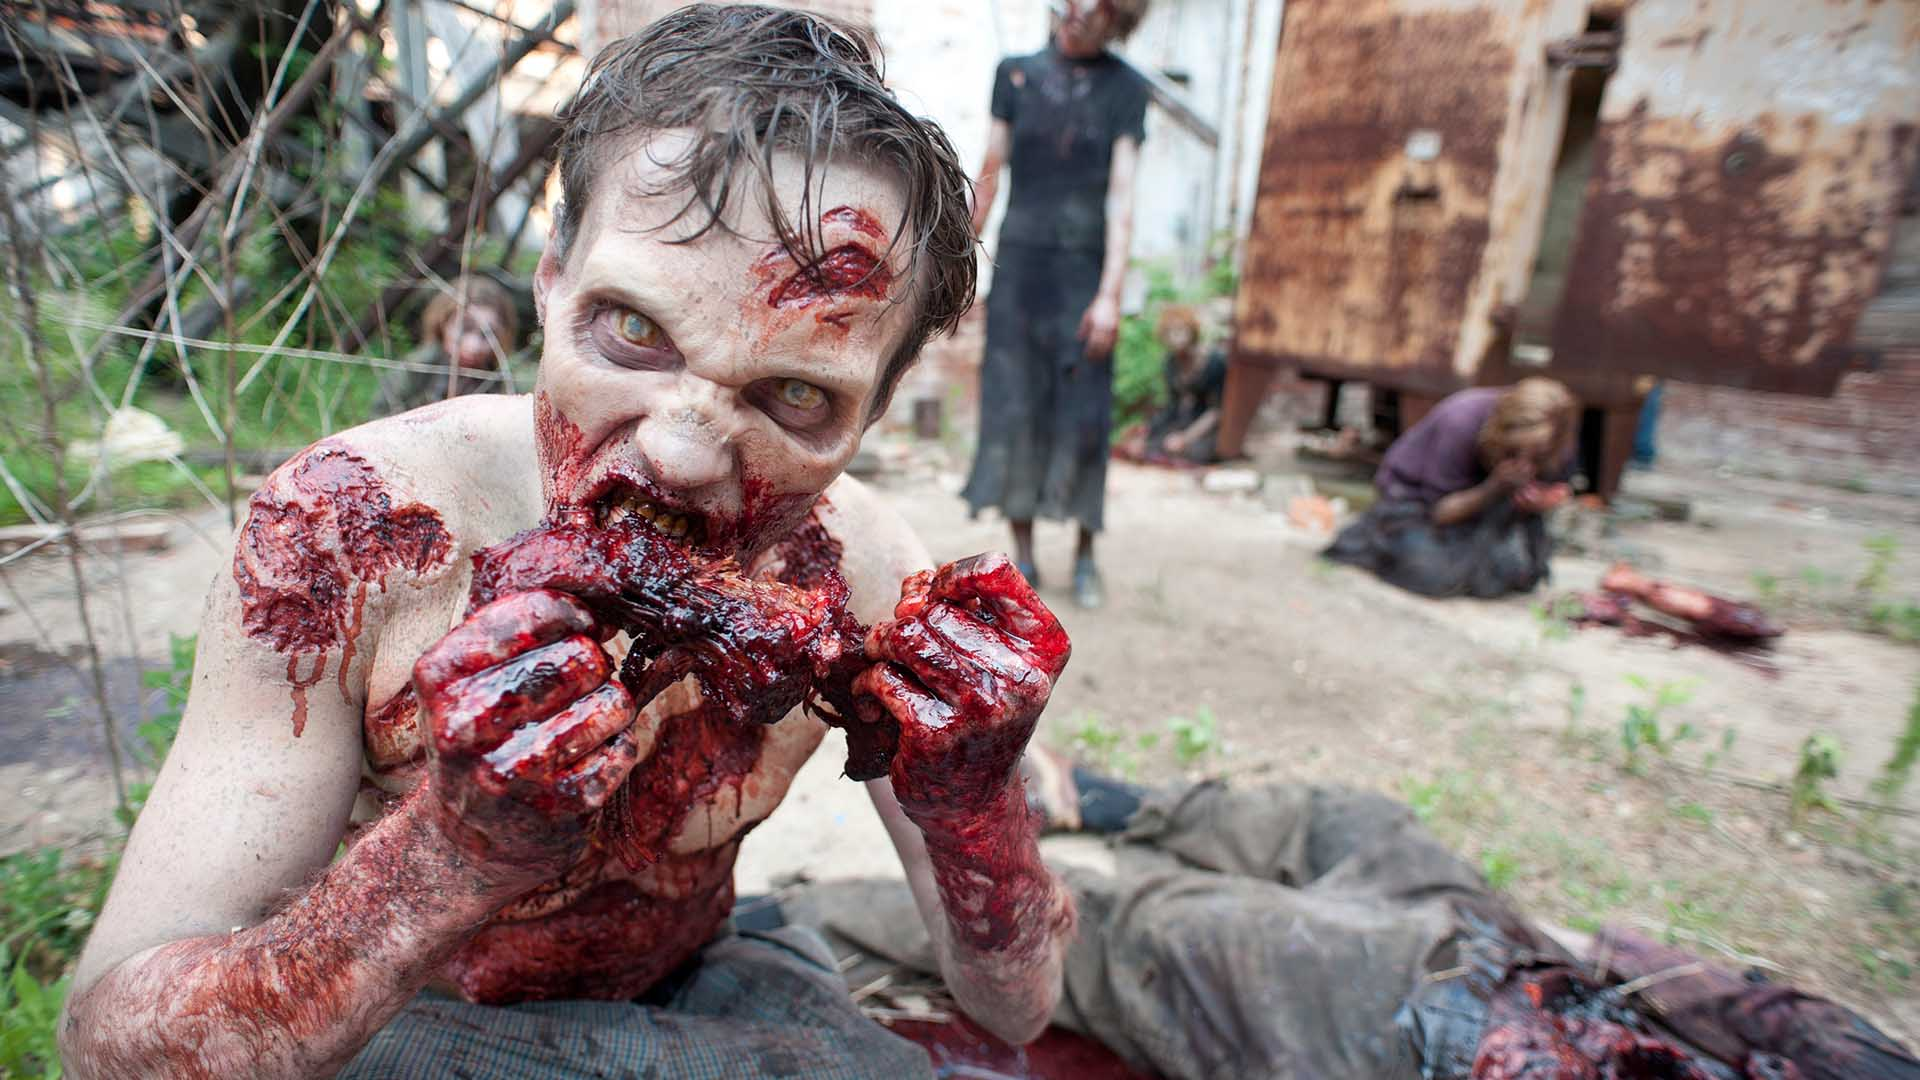 zombie guts 10 Things You Didn't Know About The Walking Dead